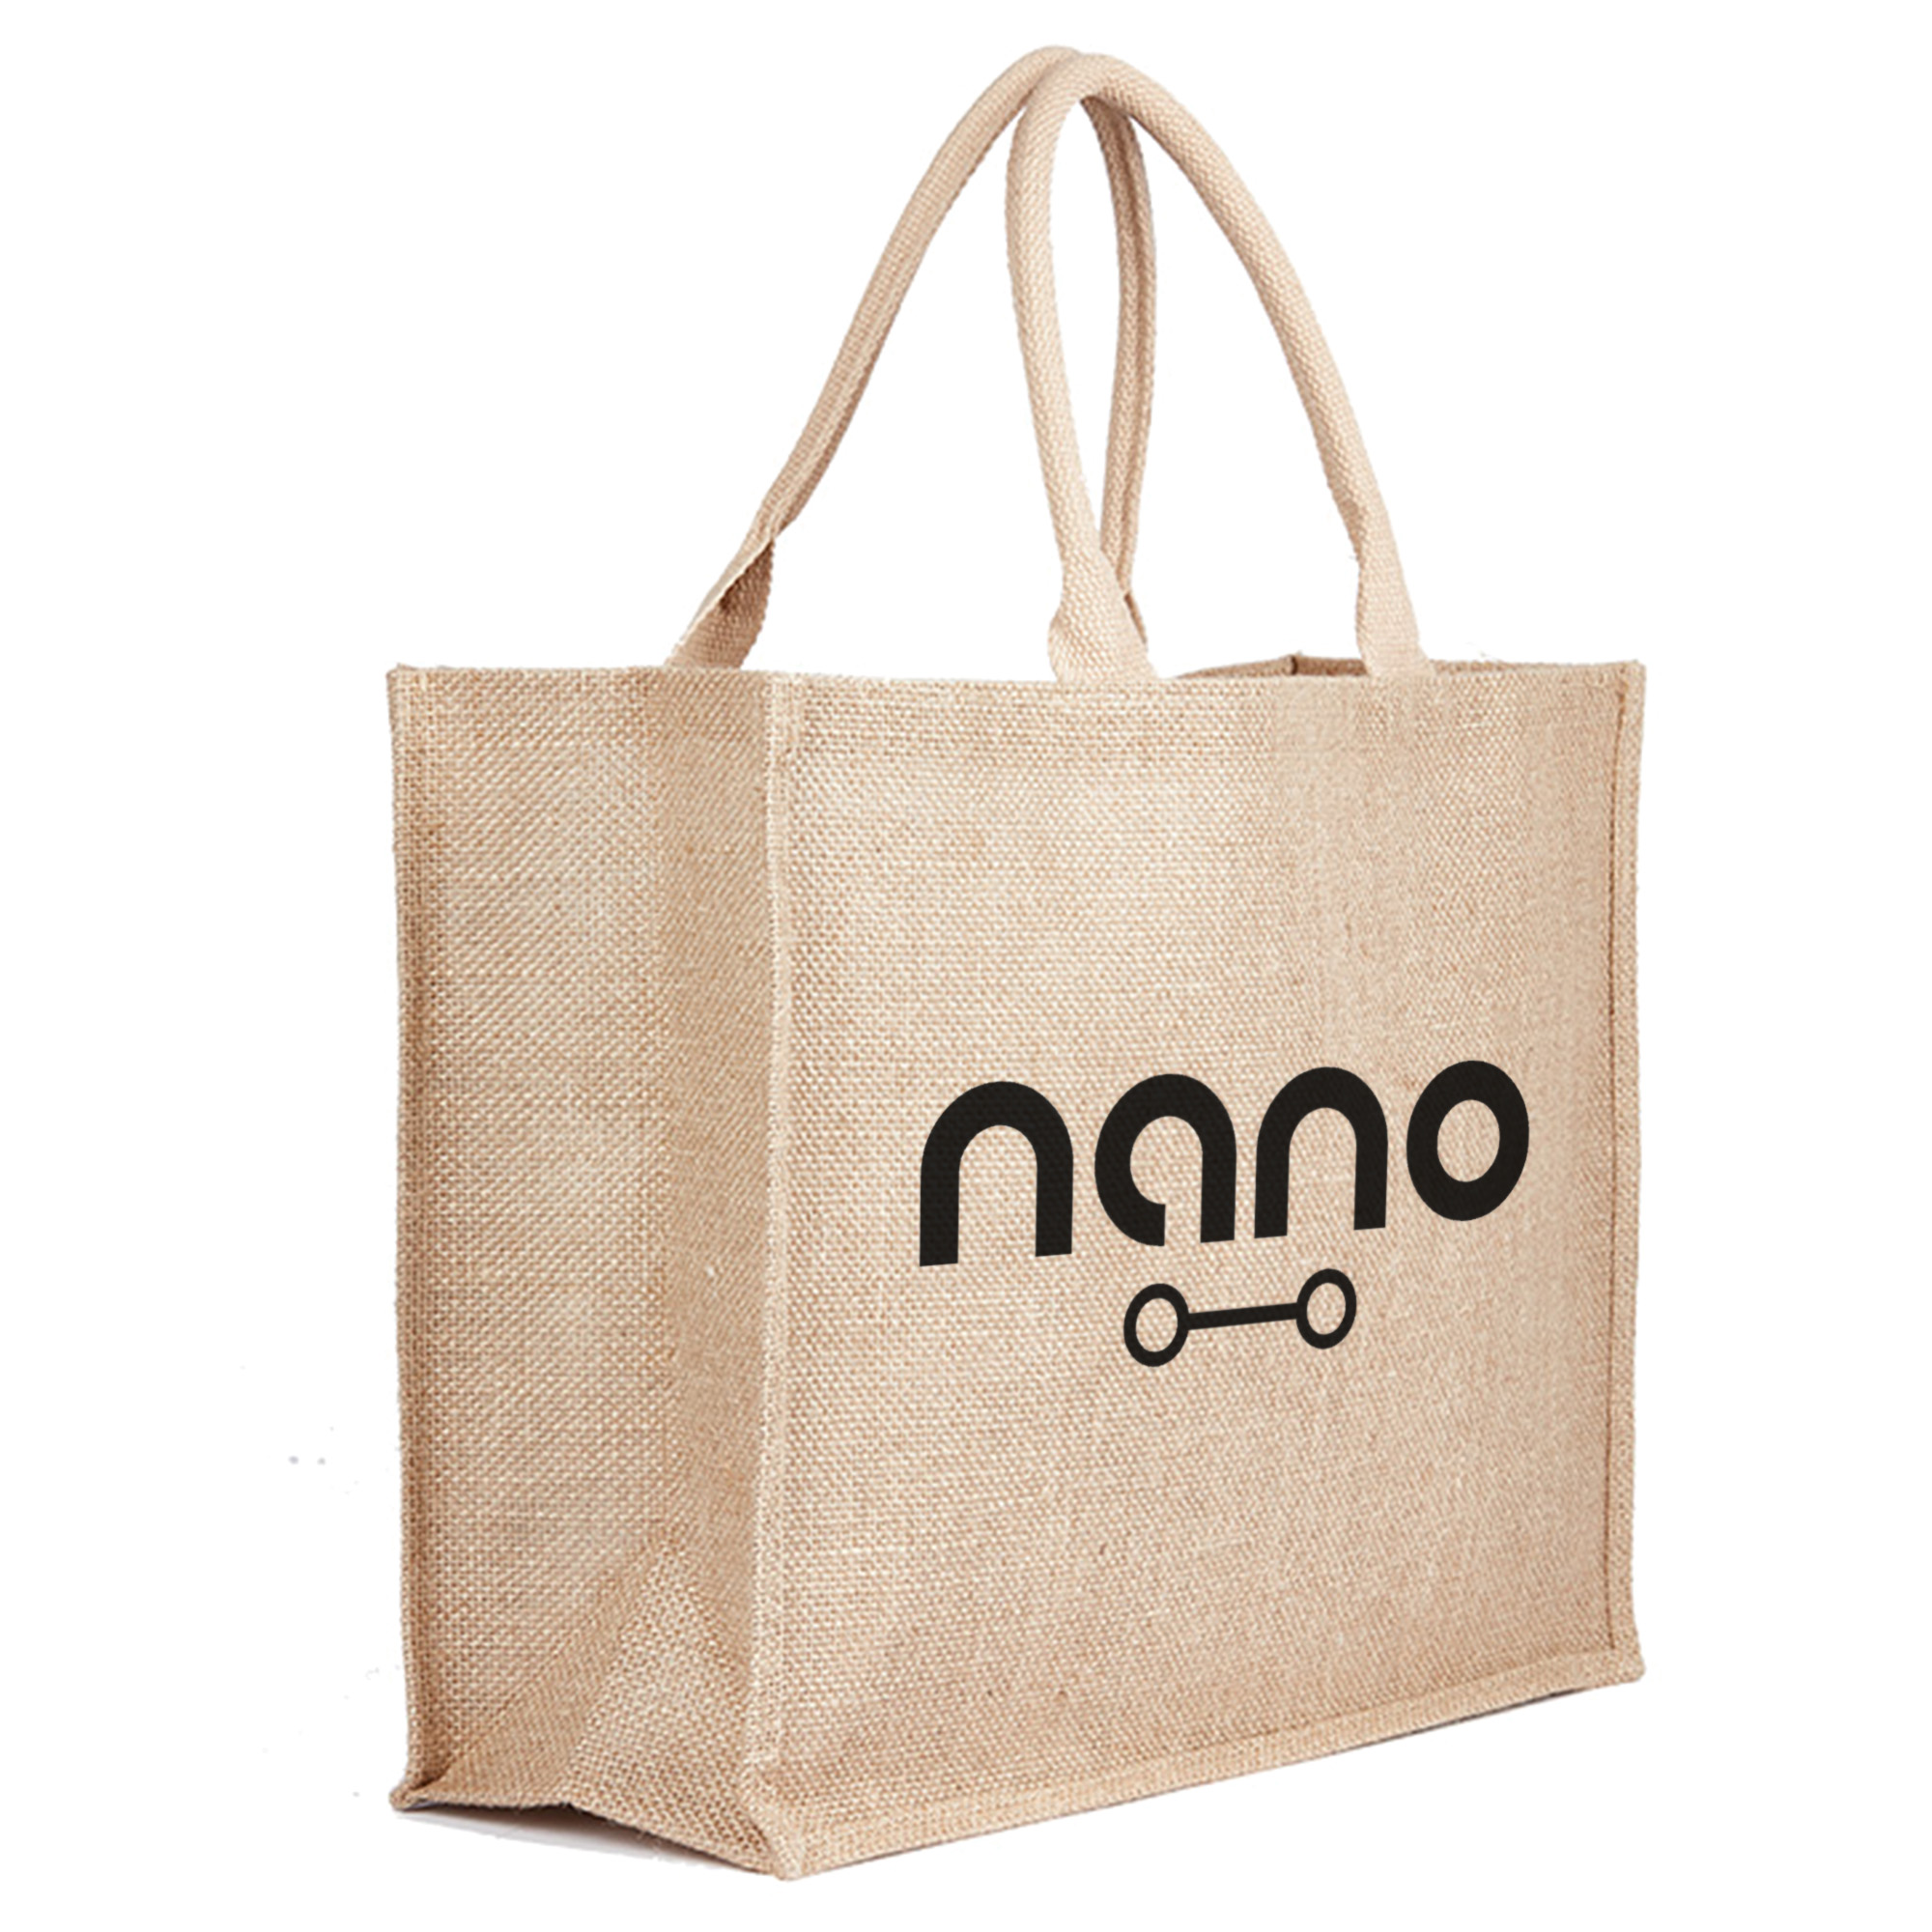 JUTE BAG NATURAL - 1 Colour Print, From $4.02